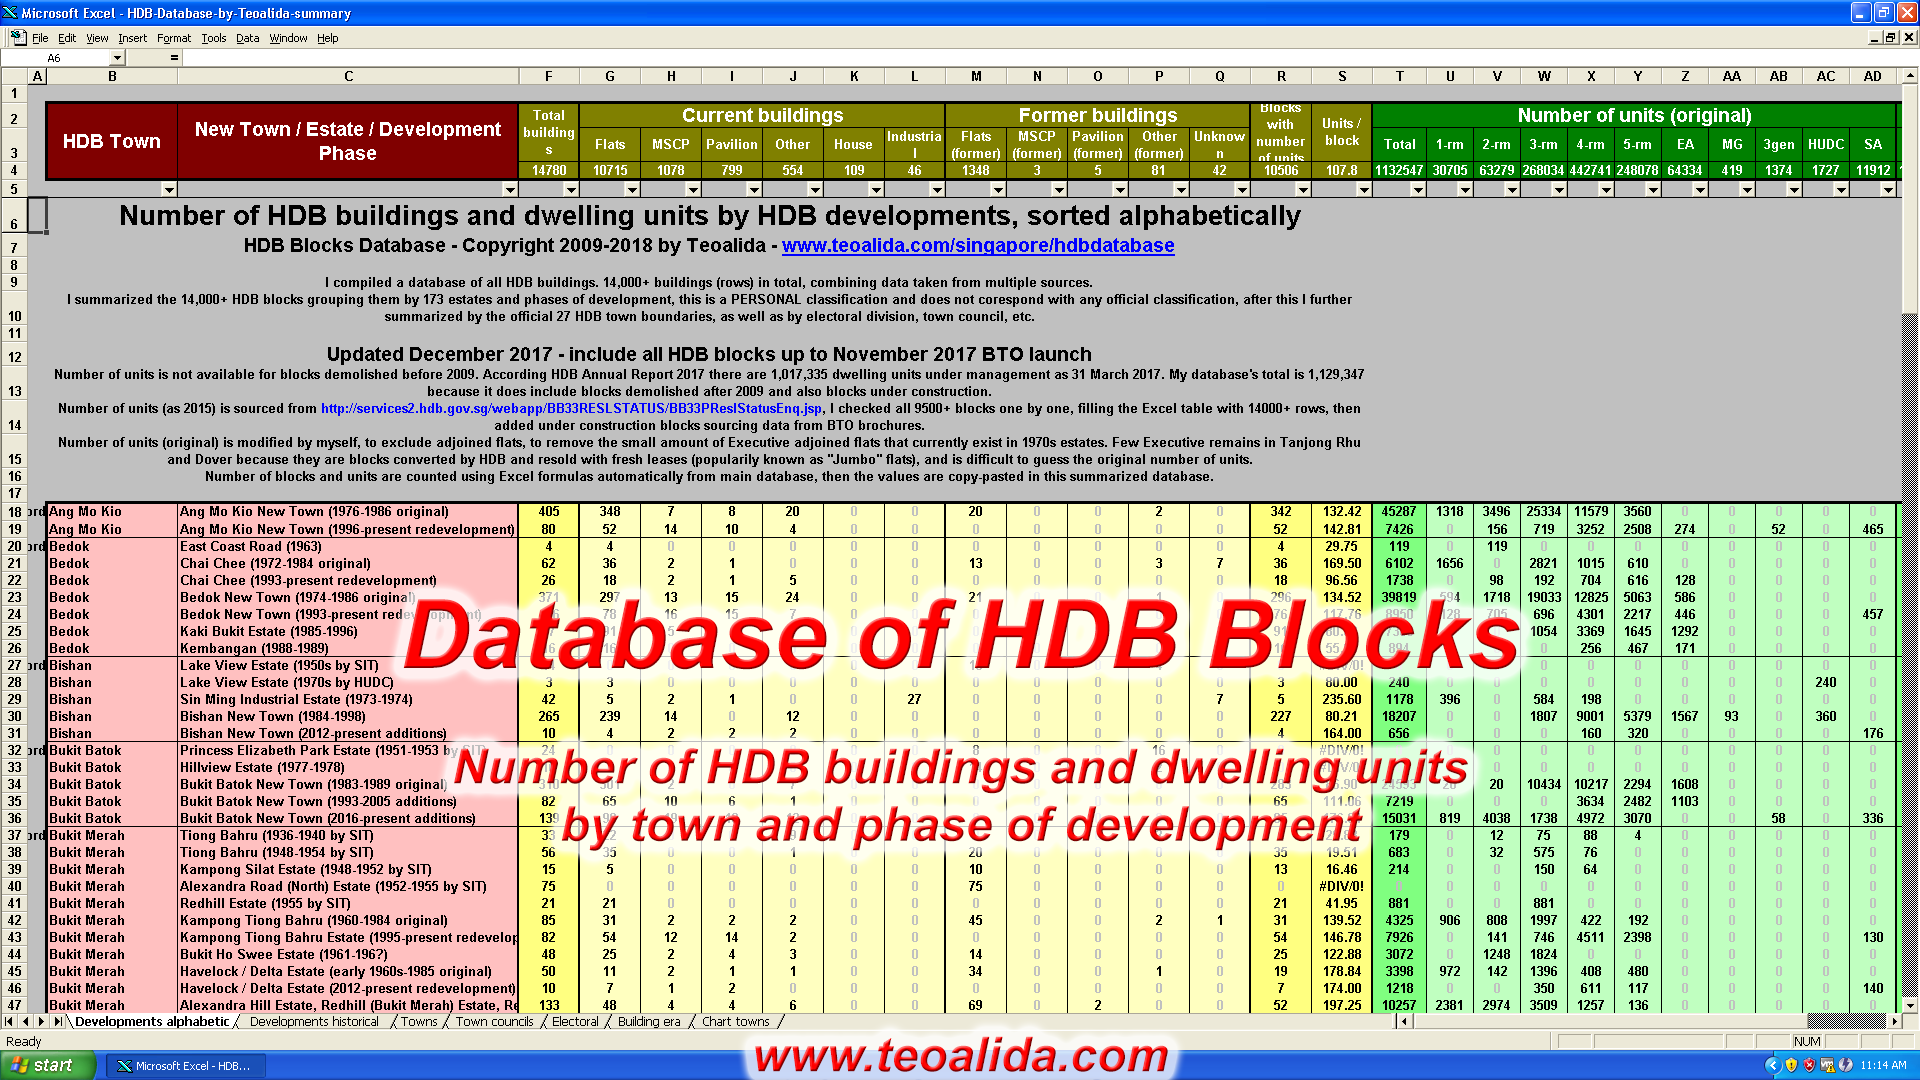 Number of blocks and dwelling units by HDB town